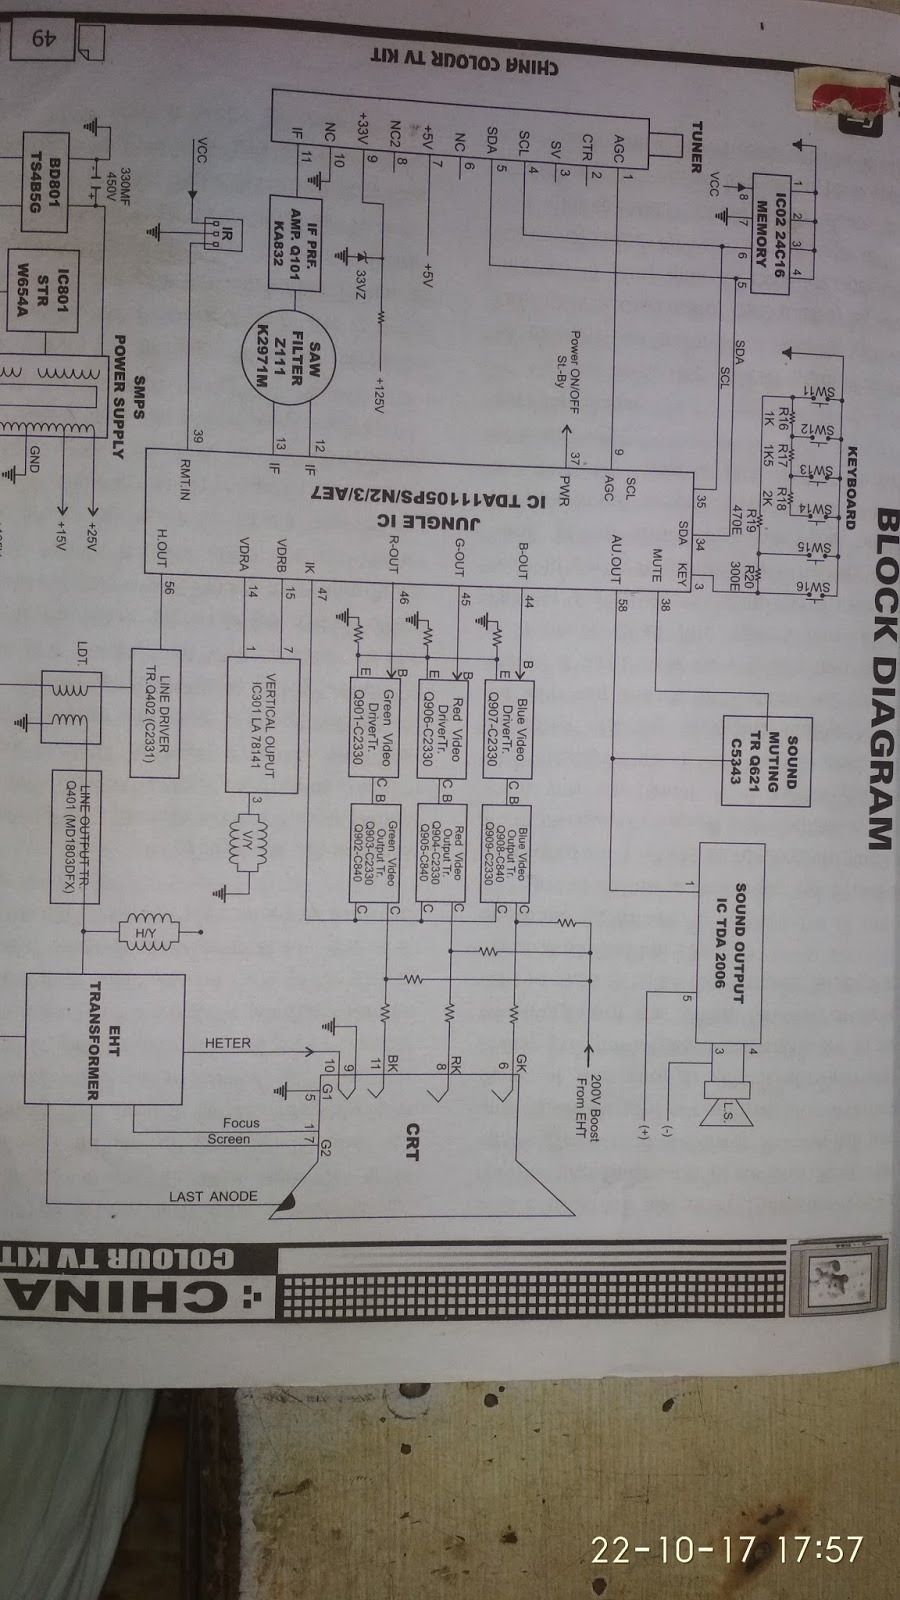 Pure Sinewave Inverter Diagram Tda 11105ps Pin Details And Hd 3 Prong Schematic Wiring 1 Jungle Ic